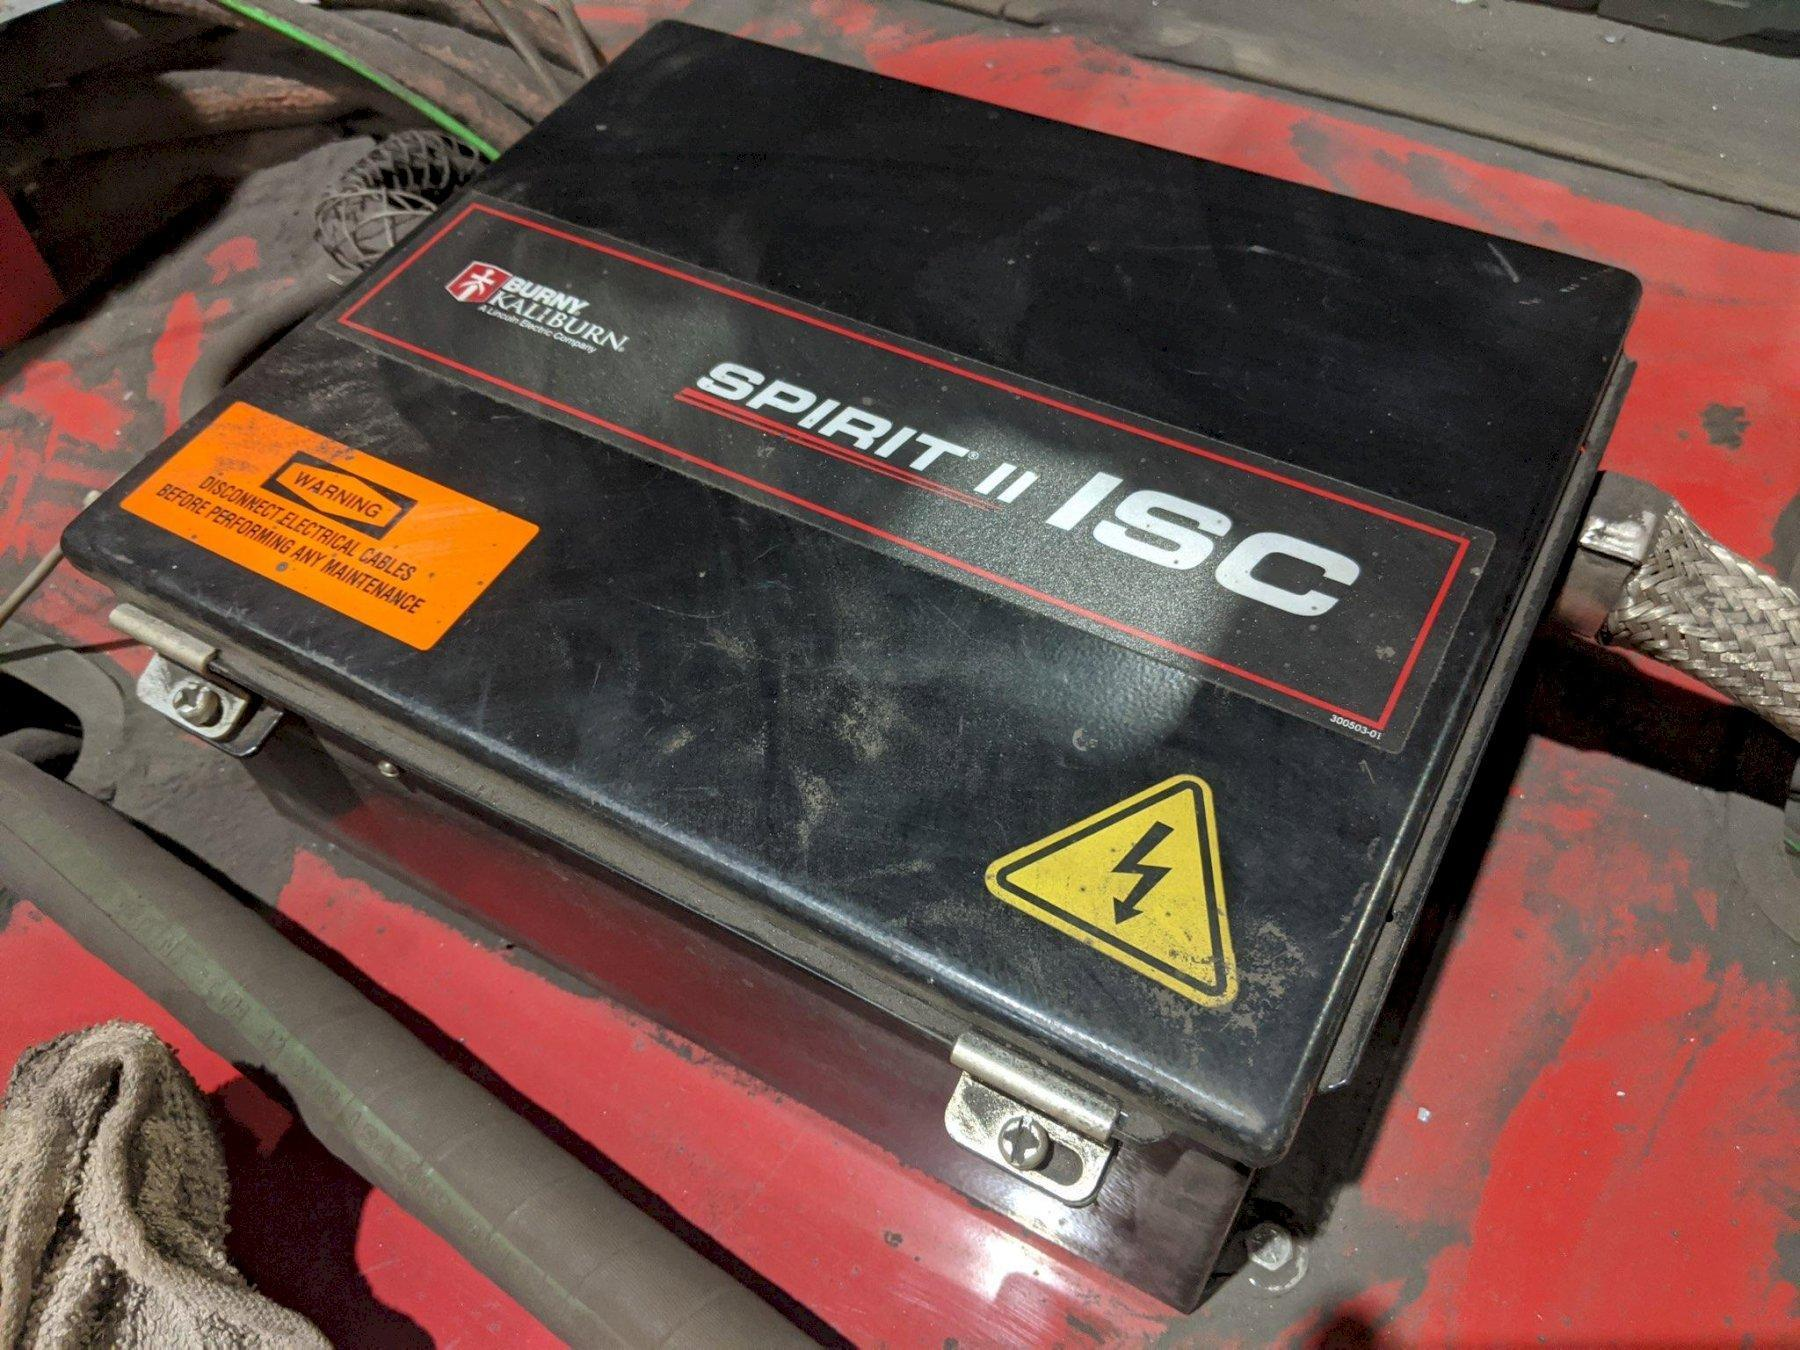 SPIRIT II 400A HIGH DEFINITION PLASMA CUTTING SYSTEM. STOCK # 2100120